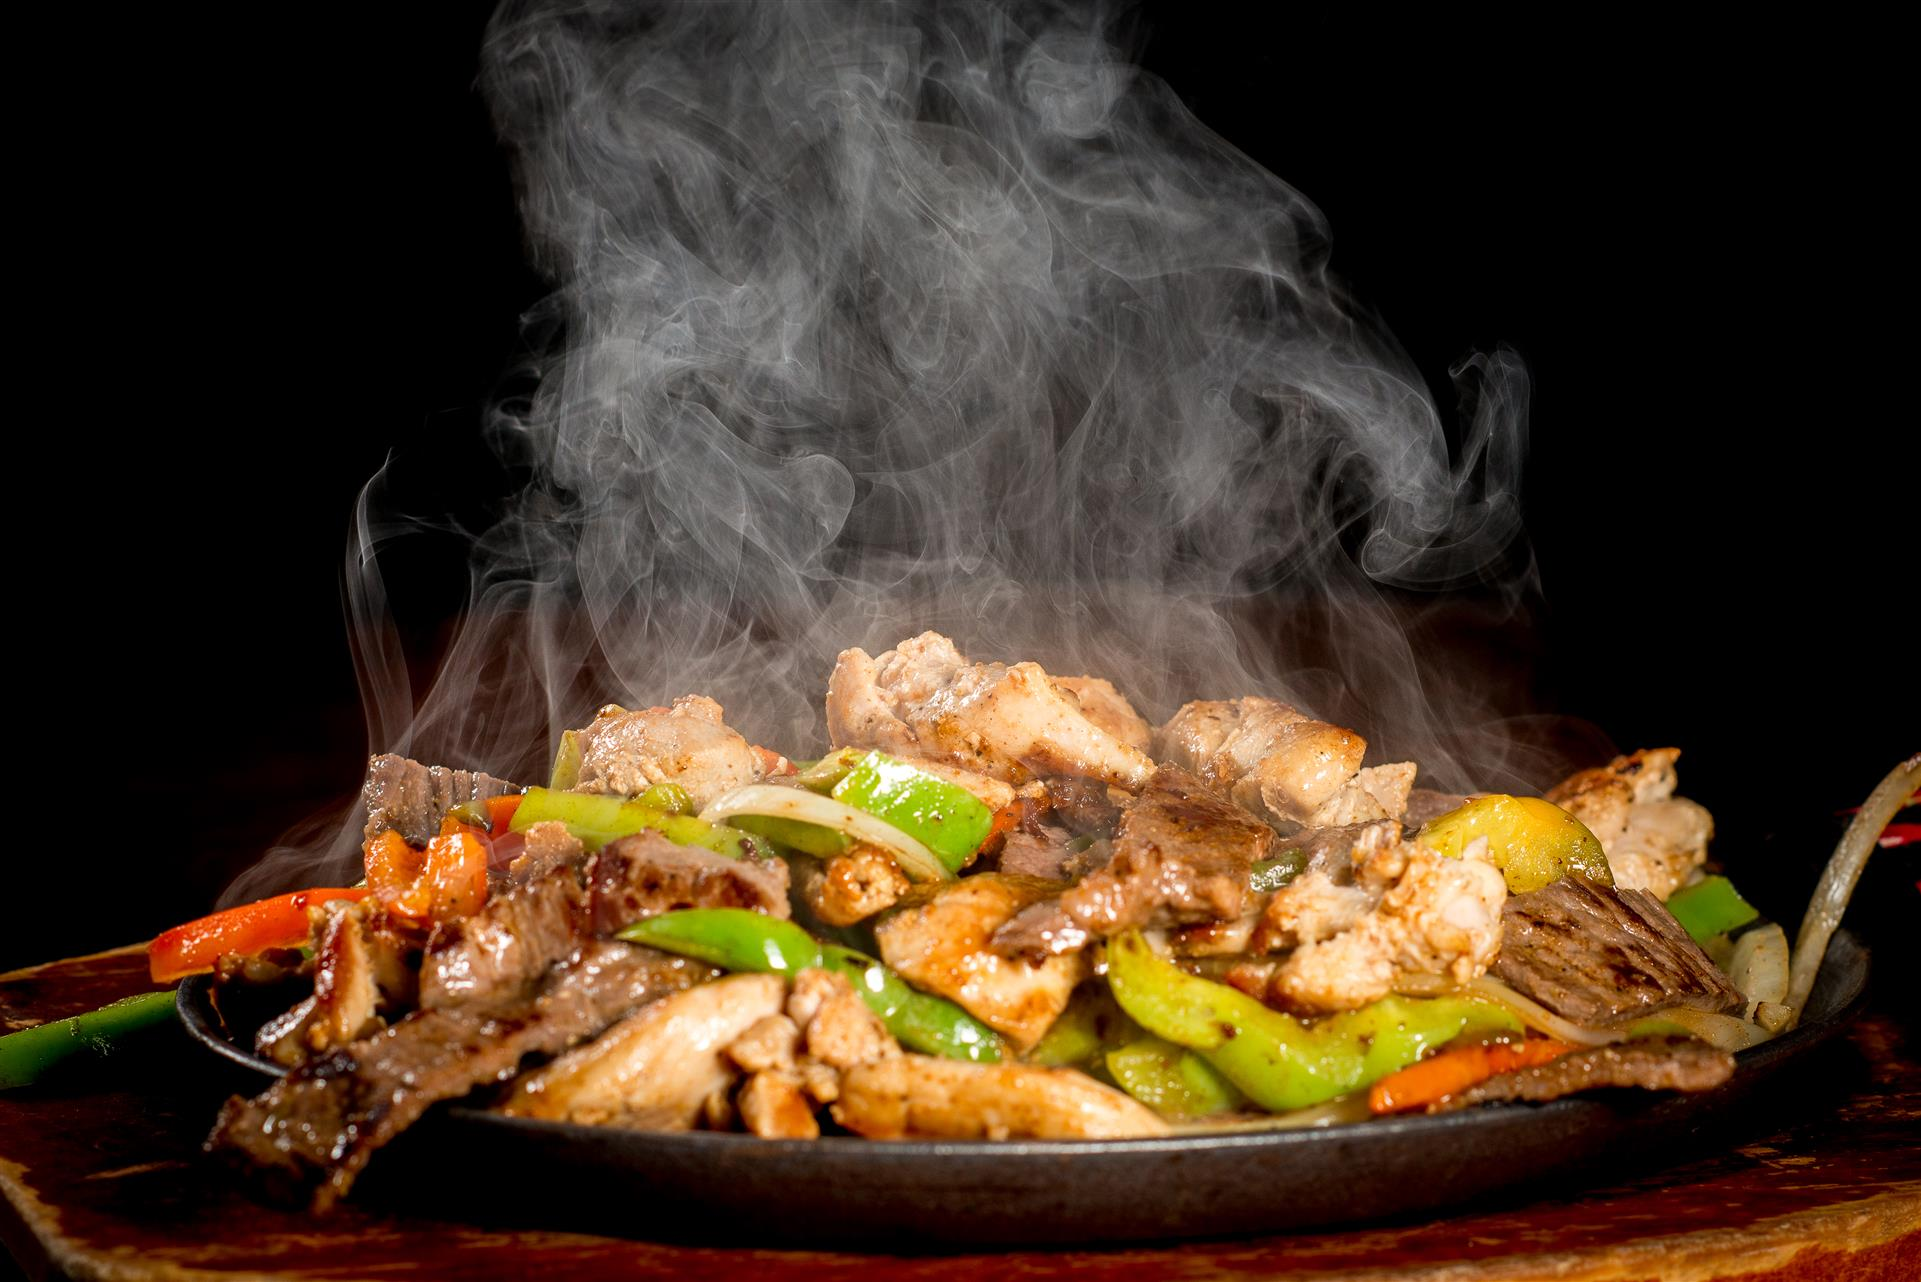 Mixed Fajita: Chicken, beef and shrimp with peppers and onions